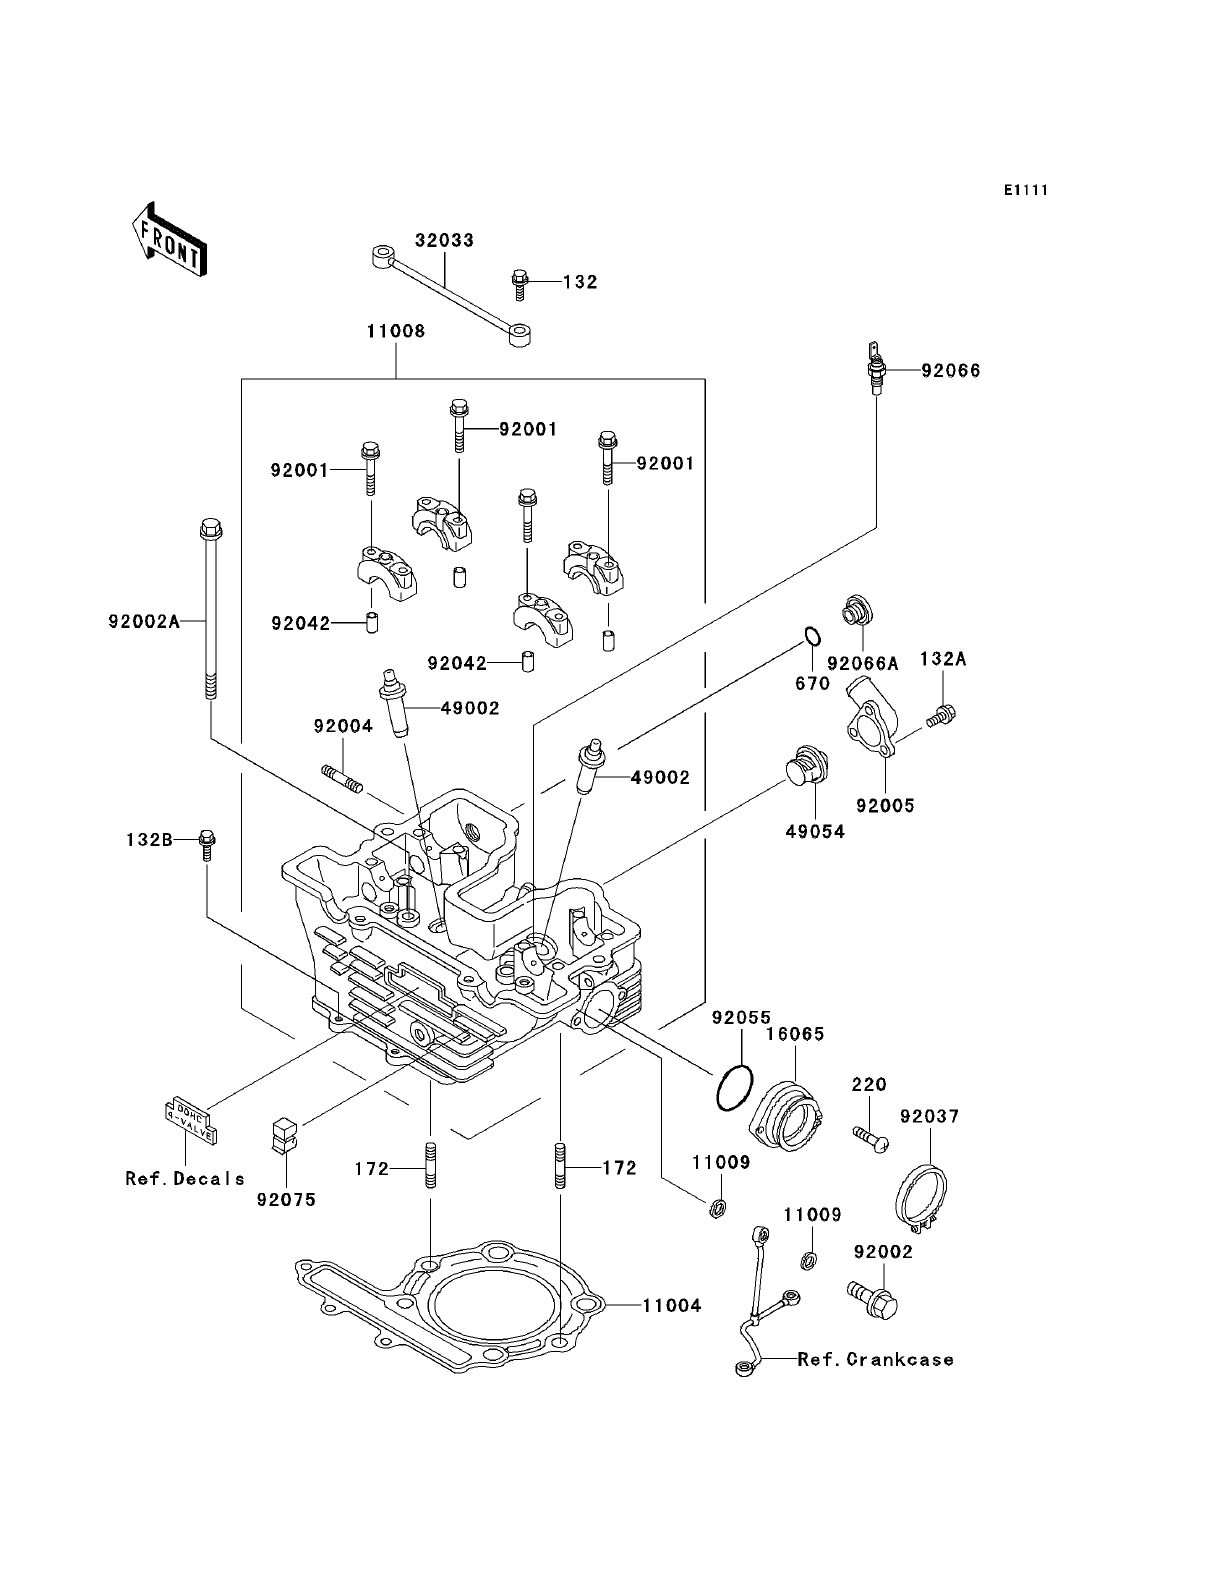 vw 1600 engine diagram eukaryotic plant cell structure firing order free image for